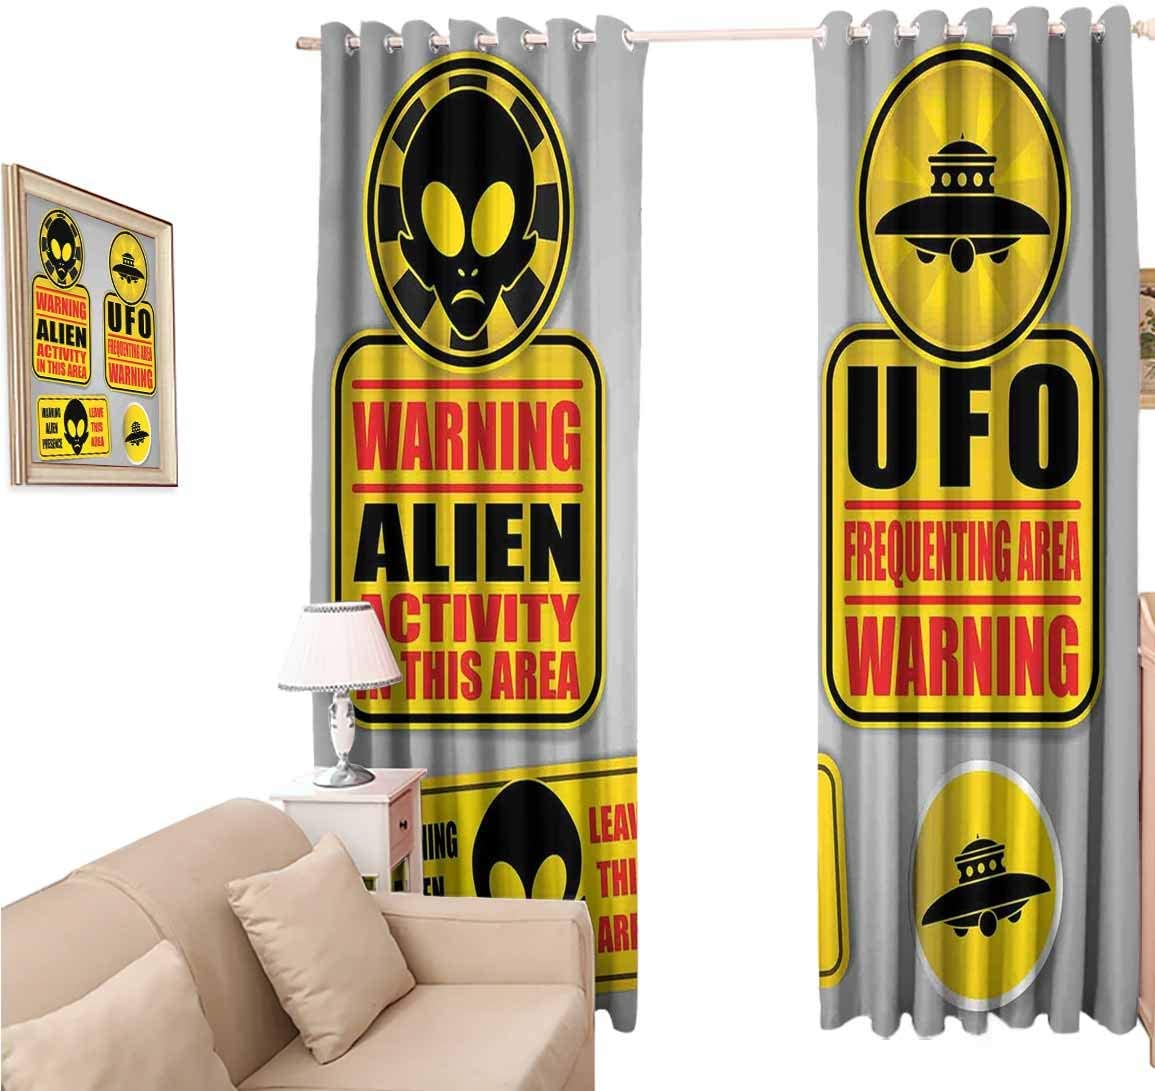 Decorative Blackout Curtains, Outer Space Warning Alien UFO Sign Face of Martian Creature Danger Horror, Curtain Panels for Living Room, 96x84 inch